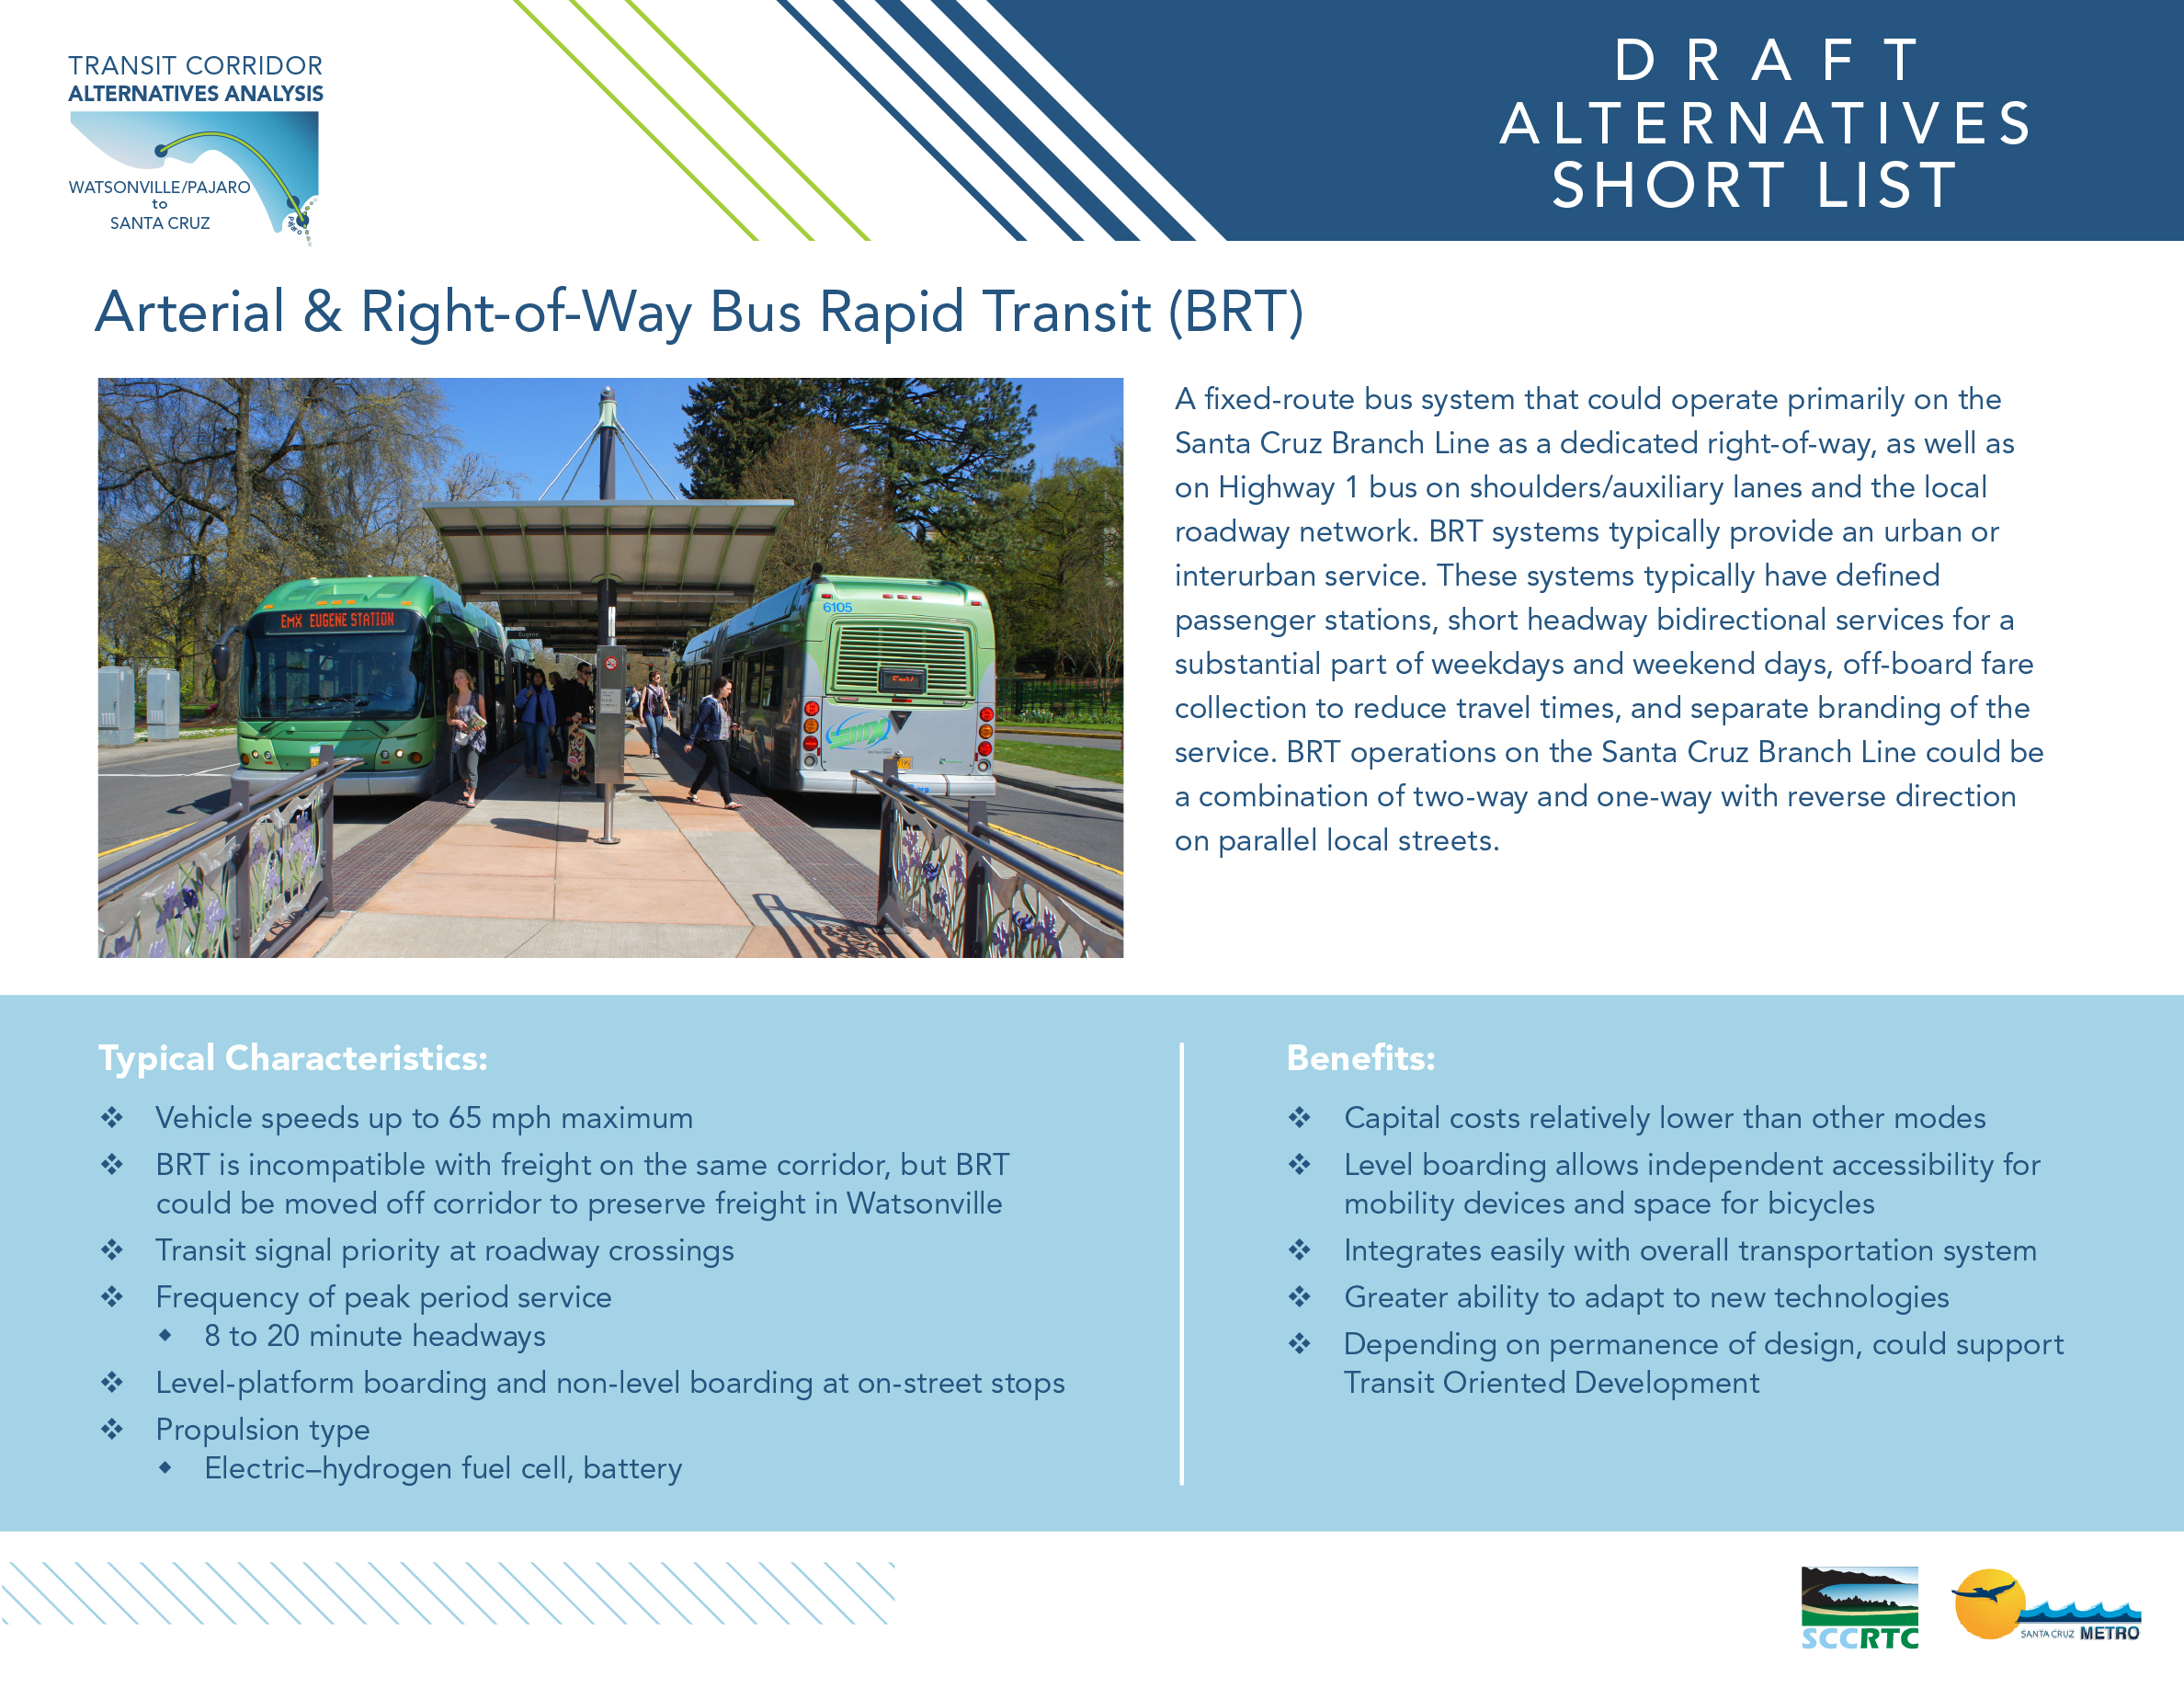 Board 1: Draft Alternatives – Short List Arterial & Right-of-Way Bus Rapid Transit (BRT) A fixed-route bus system that could operate primarily on the Santa Cruz Branch Line as a dedicated right-of-way, as well as on Highway 1 bus on shoulders/auxiliary lanes and the local roadway network. BRT systems typically provide an urban or interurban service. These systems typically have defined passenger stations, short headway bidirectional services for a substantial part of weekdays and weekend days, off-board fare collection to reduce travel times, and separate branding of the service. BRT operations on the Santa Cruz Branch Line could be a combination of two-way and one-way with reverse direction on parallel local streets. Typical Characteristics: • Vehicle speeds up to 65 mph maximum • BRT is incompatible with freight on the same corridor, but BRT could be moved off corridor to preserve freight in Watsonville • Transit signal priority at roadway crossings • Frequency of peak period service • 8 to 20 minute headways • Level-platform boarding and non-level boarding at on-street stops • Propulsion type • Electric–hydrogen fuel cell, battery Benefits: • Capital costs relatively lower than other modes • Level boarding allows independent accessibility for • mobility devices and space for bicycles • Integrates easily with overall transportation system • Greater ability to adapt to new technologies • Depending on permanence of design, could support • Transit Oriented Development